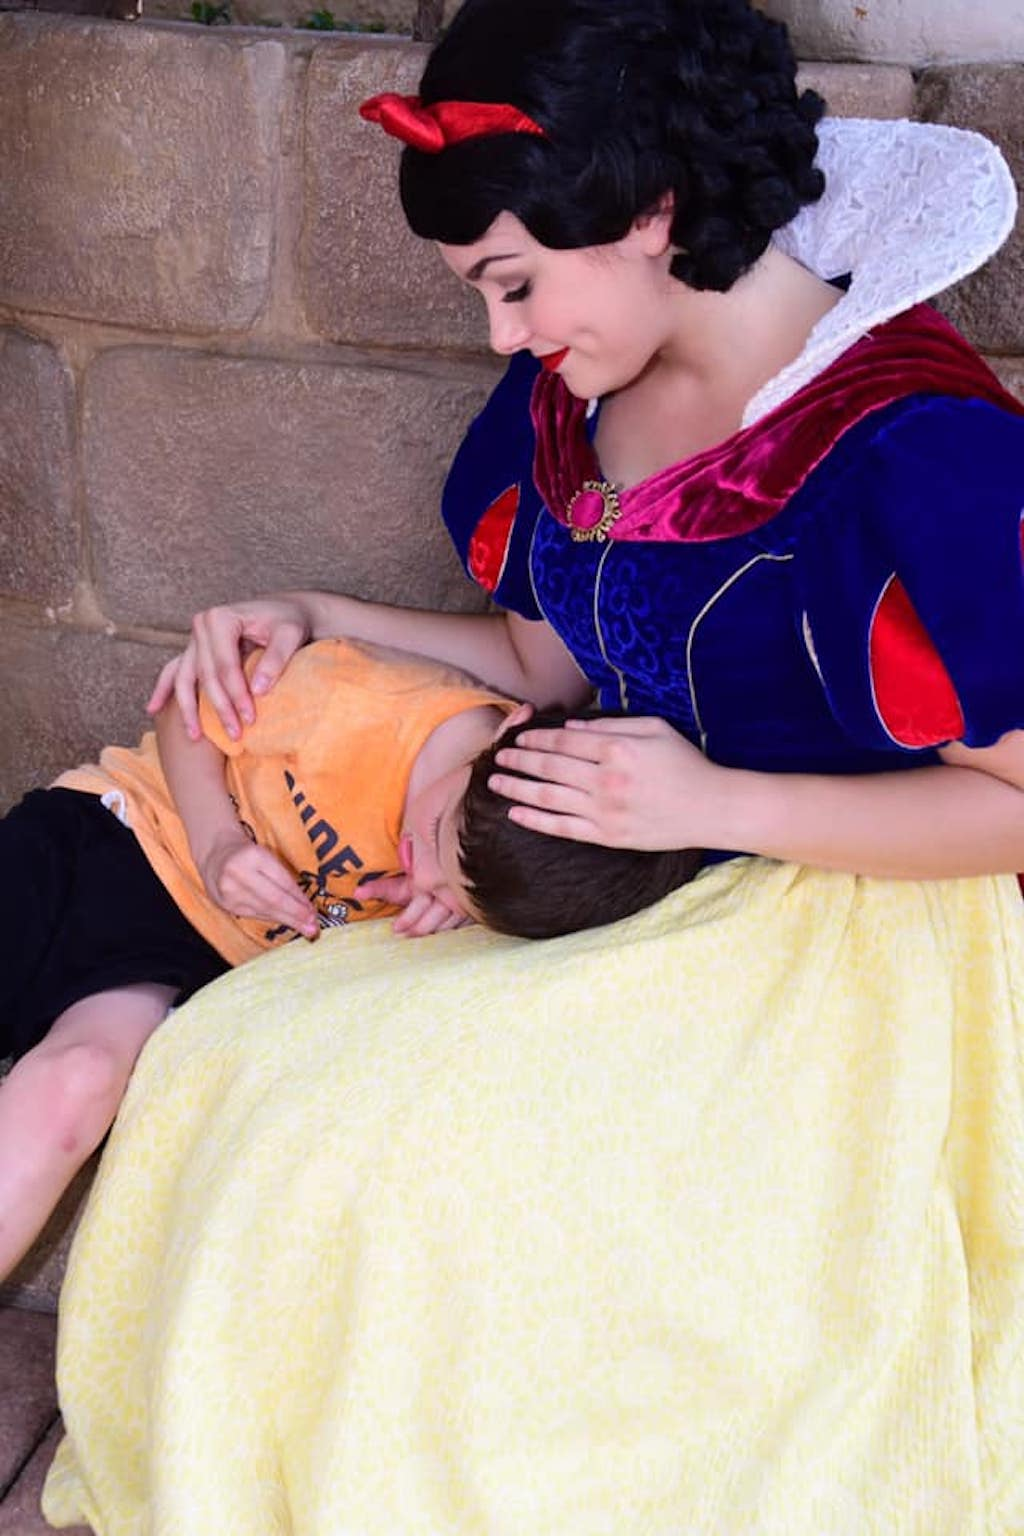 snow white comforts child with autism